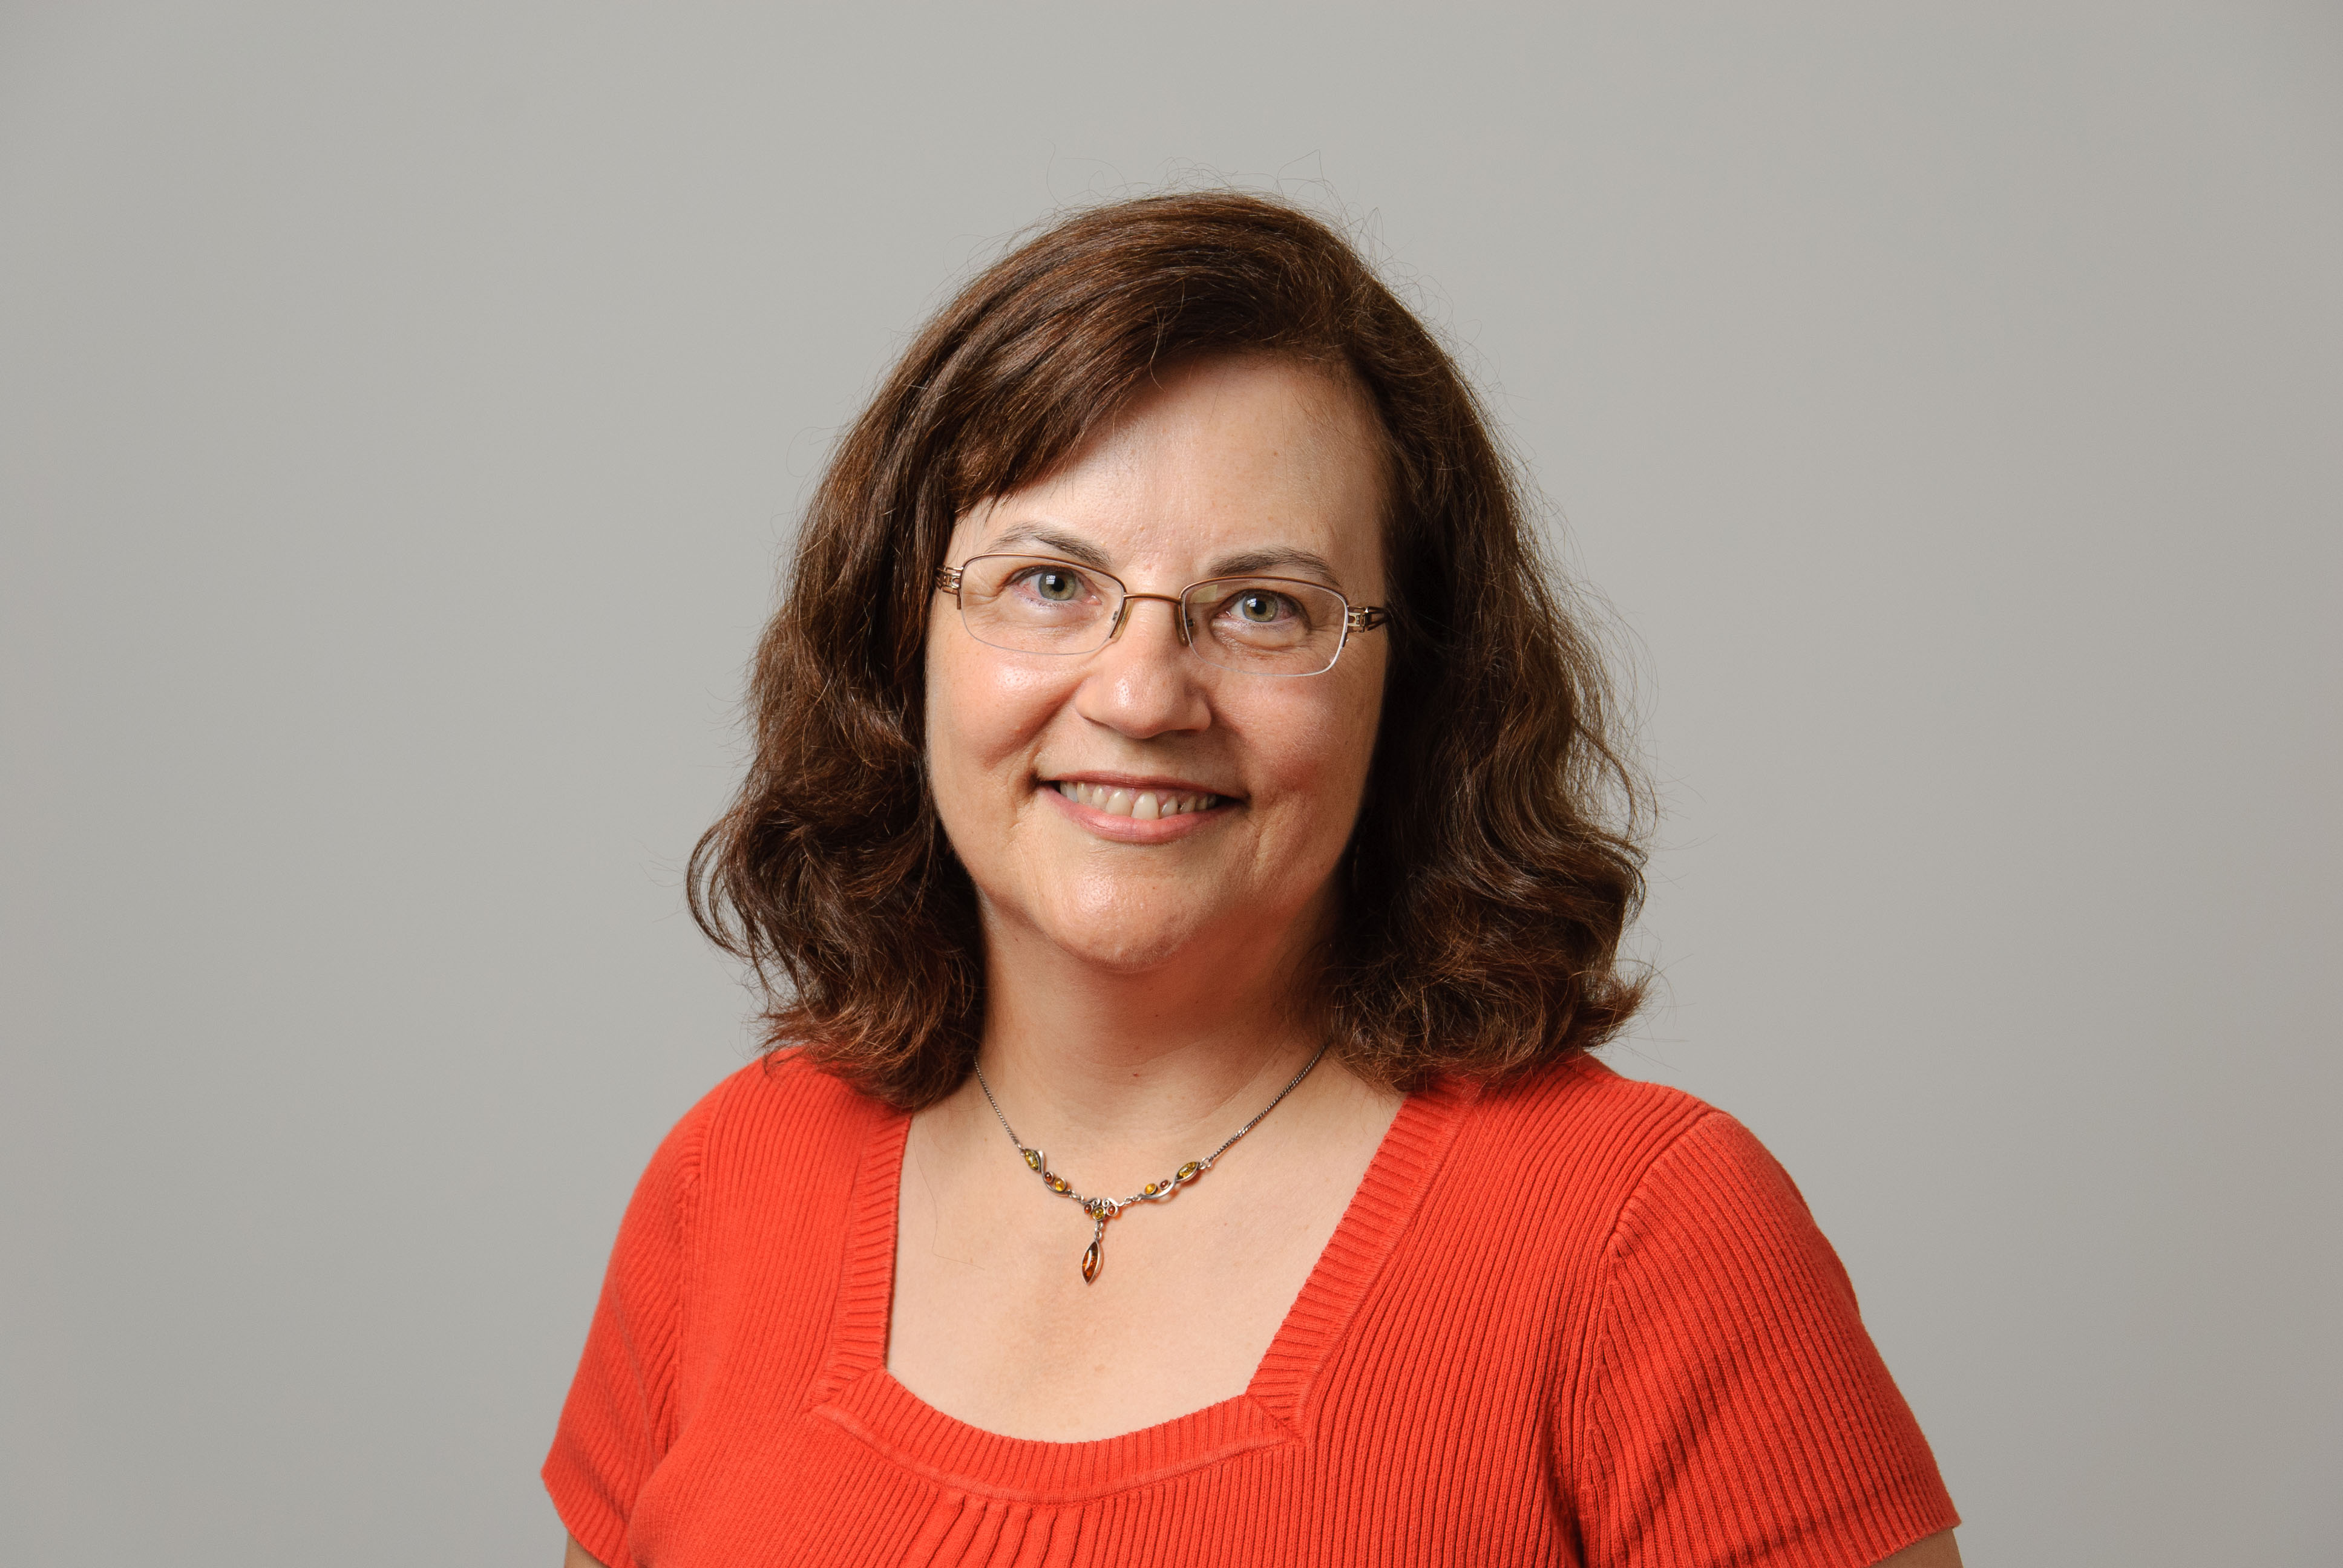 Woman with brown hair and glasses wearing an orange top